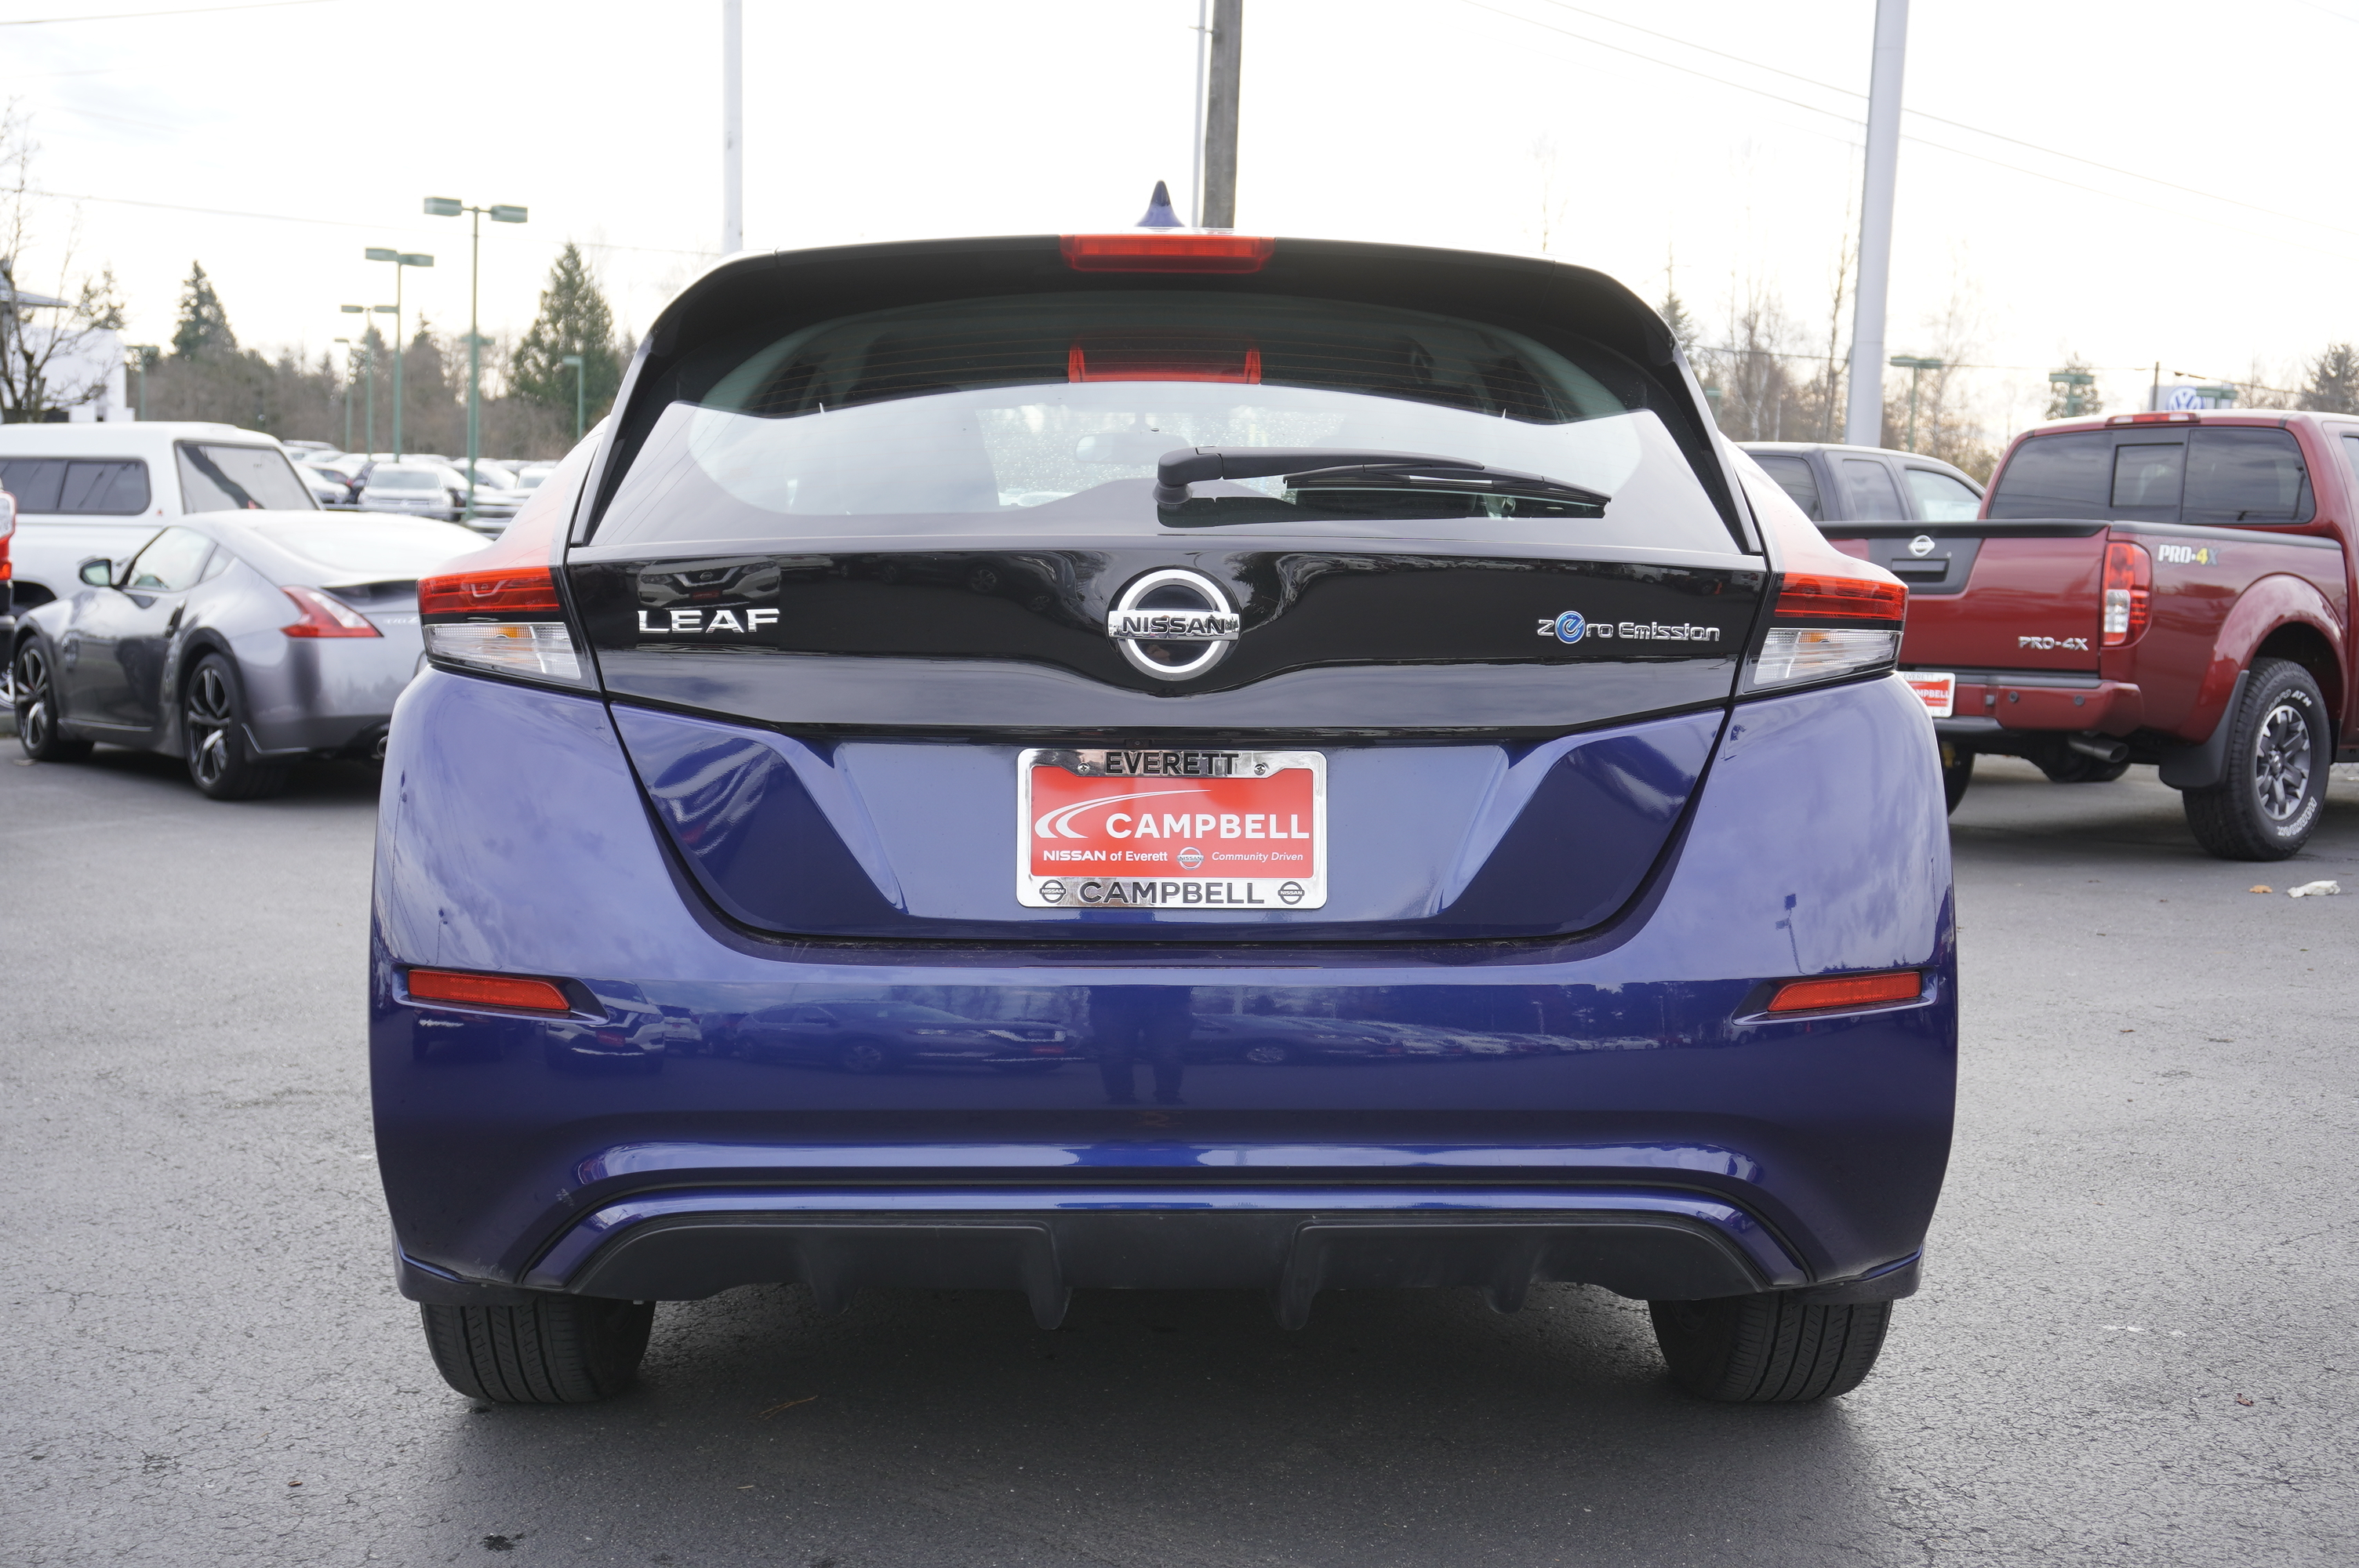 Certified Pre-Owned 2018 Nissan Leaf S